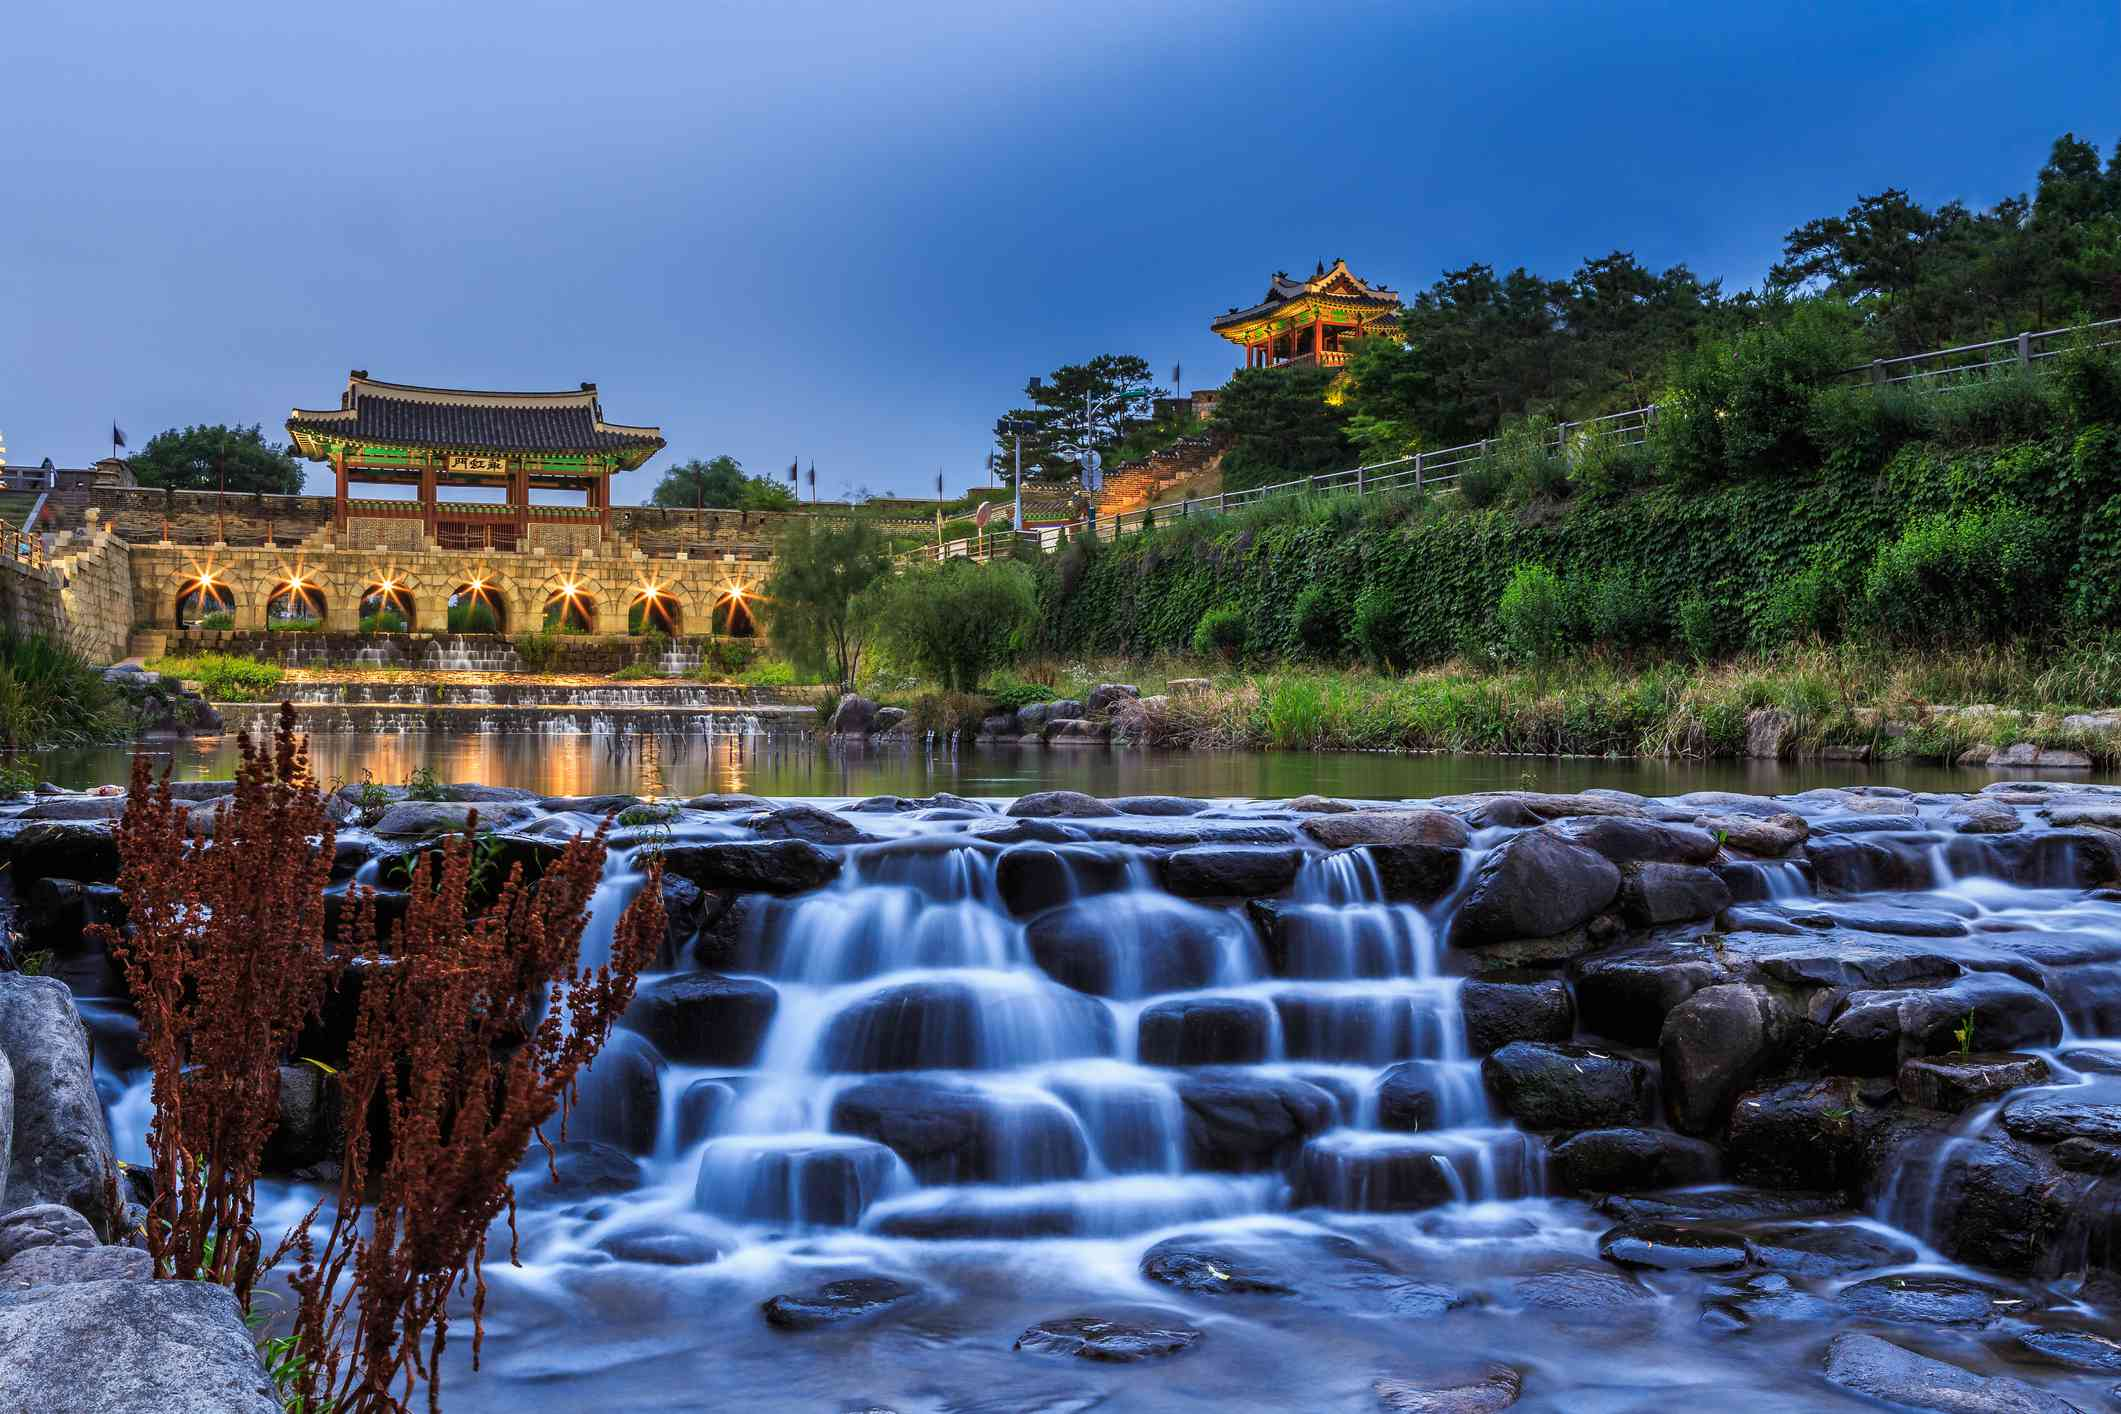 Hwahongmun with a little cascade at night